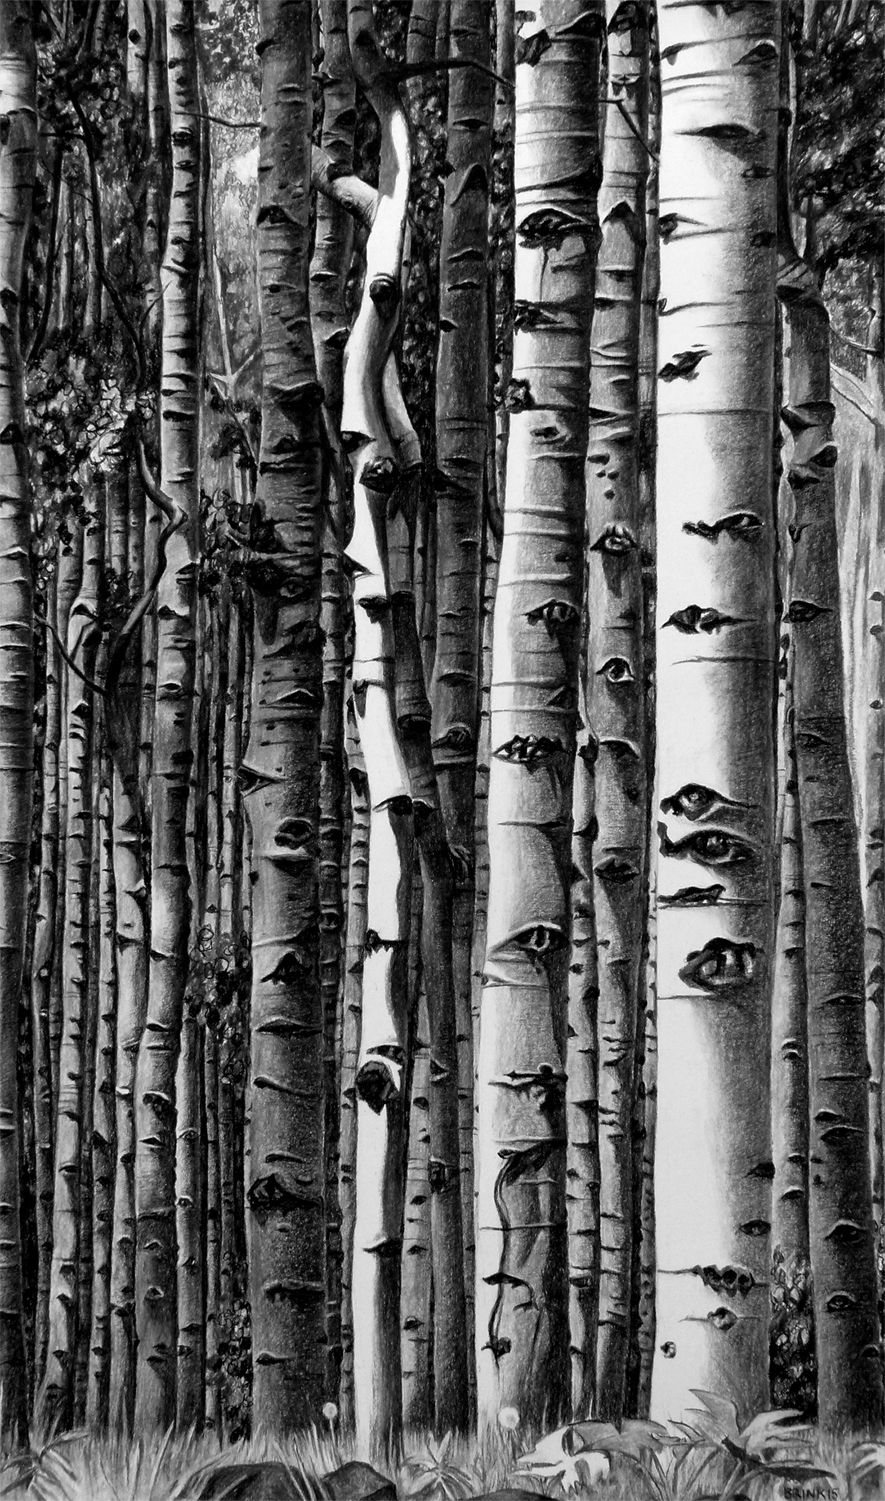 Up Among Aspens - High, 46 x 27 in, charcoal + conté on paper, 2015